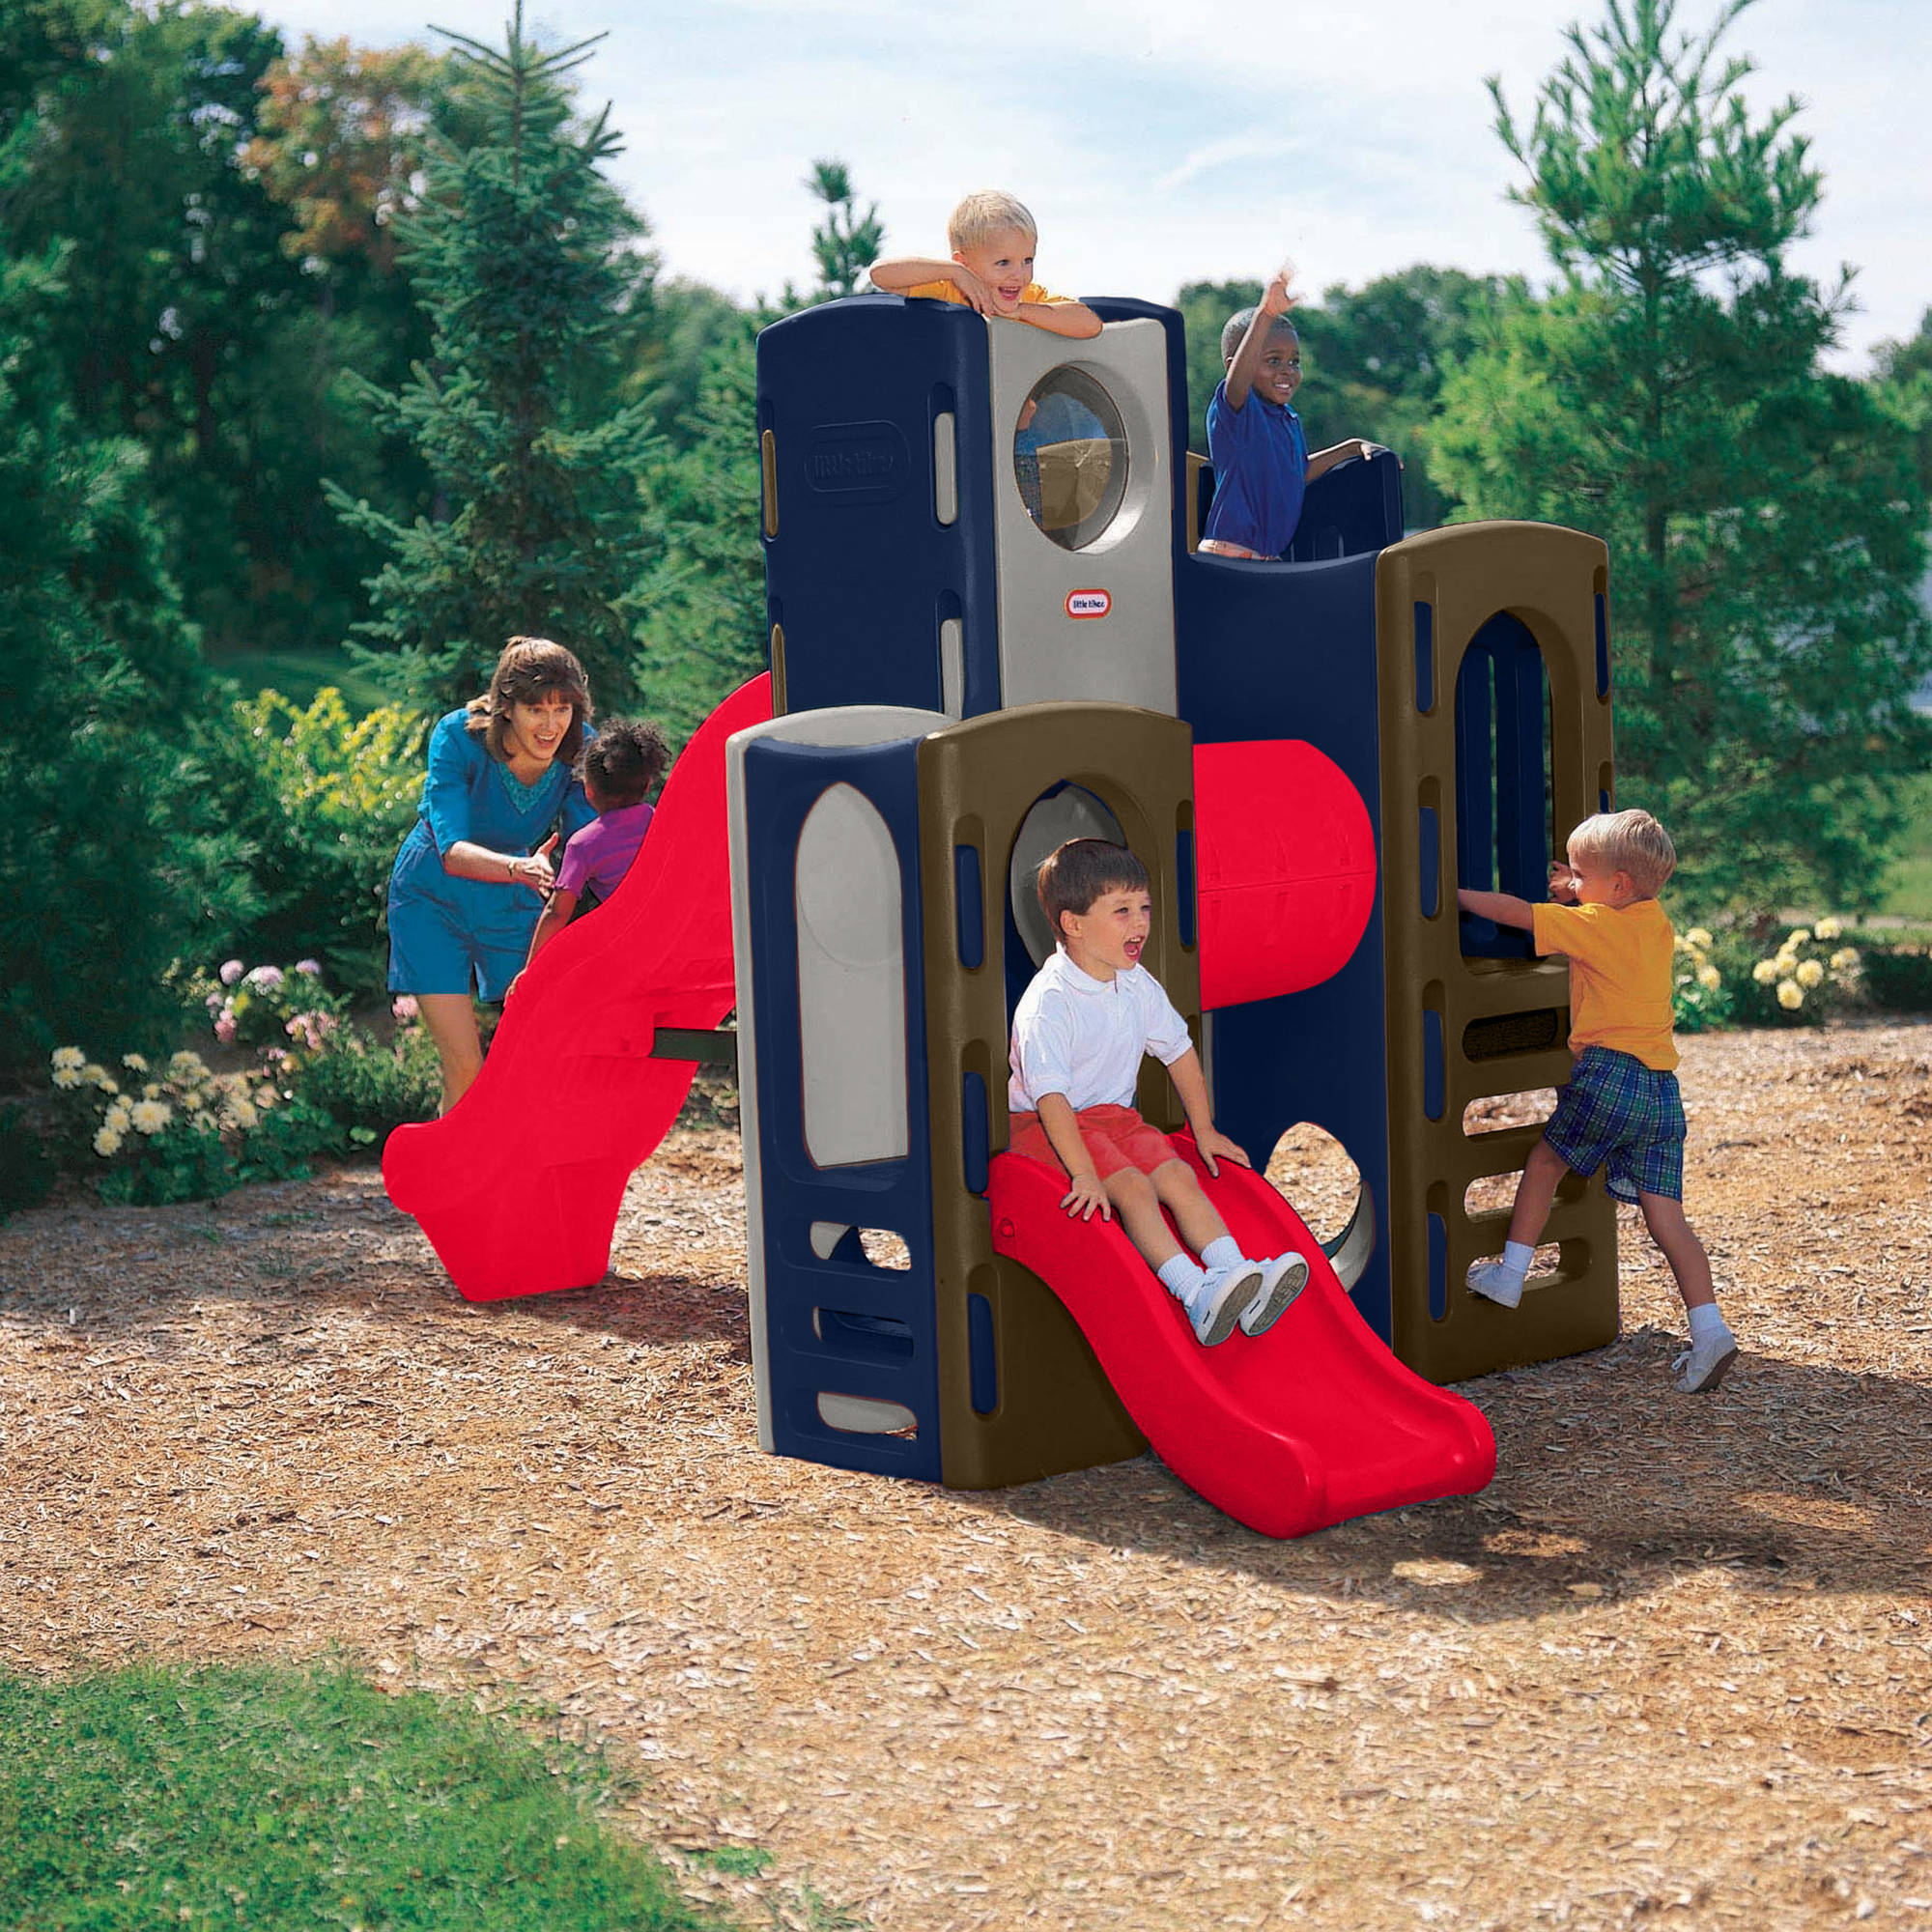 Playground climber tunnel 2 slides little tikes kids 3 for Little tikes outdoor playset